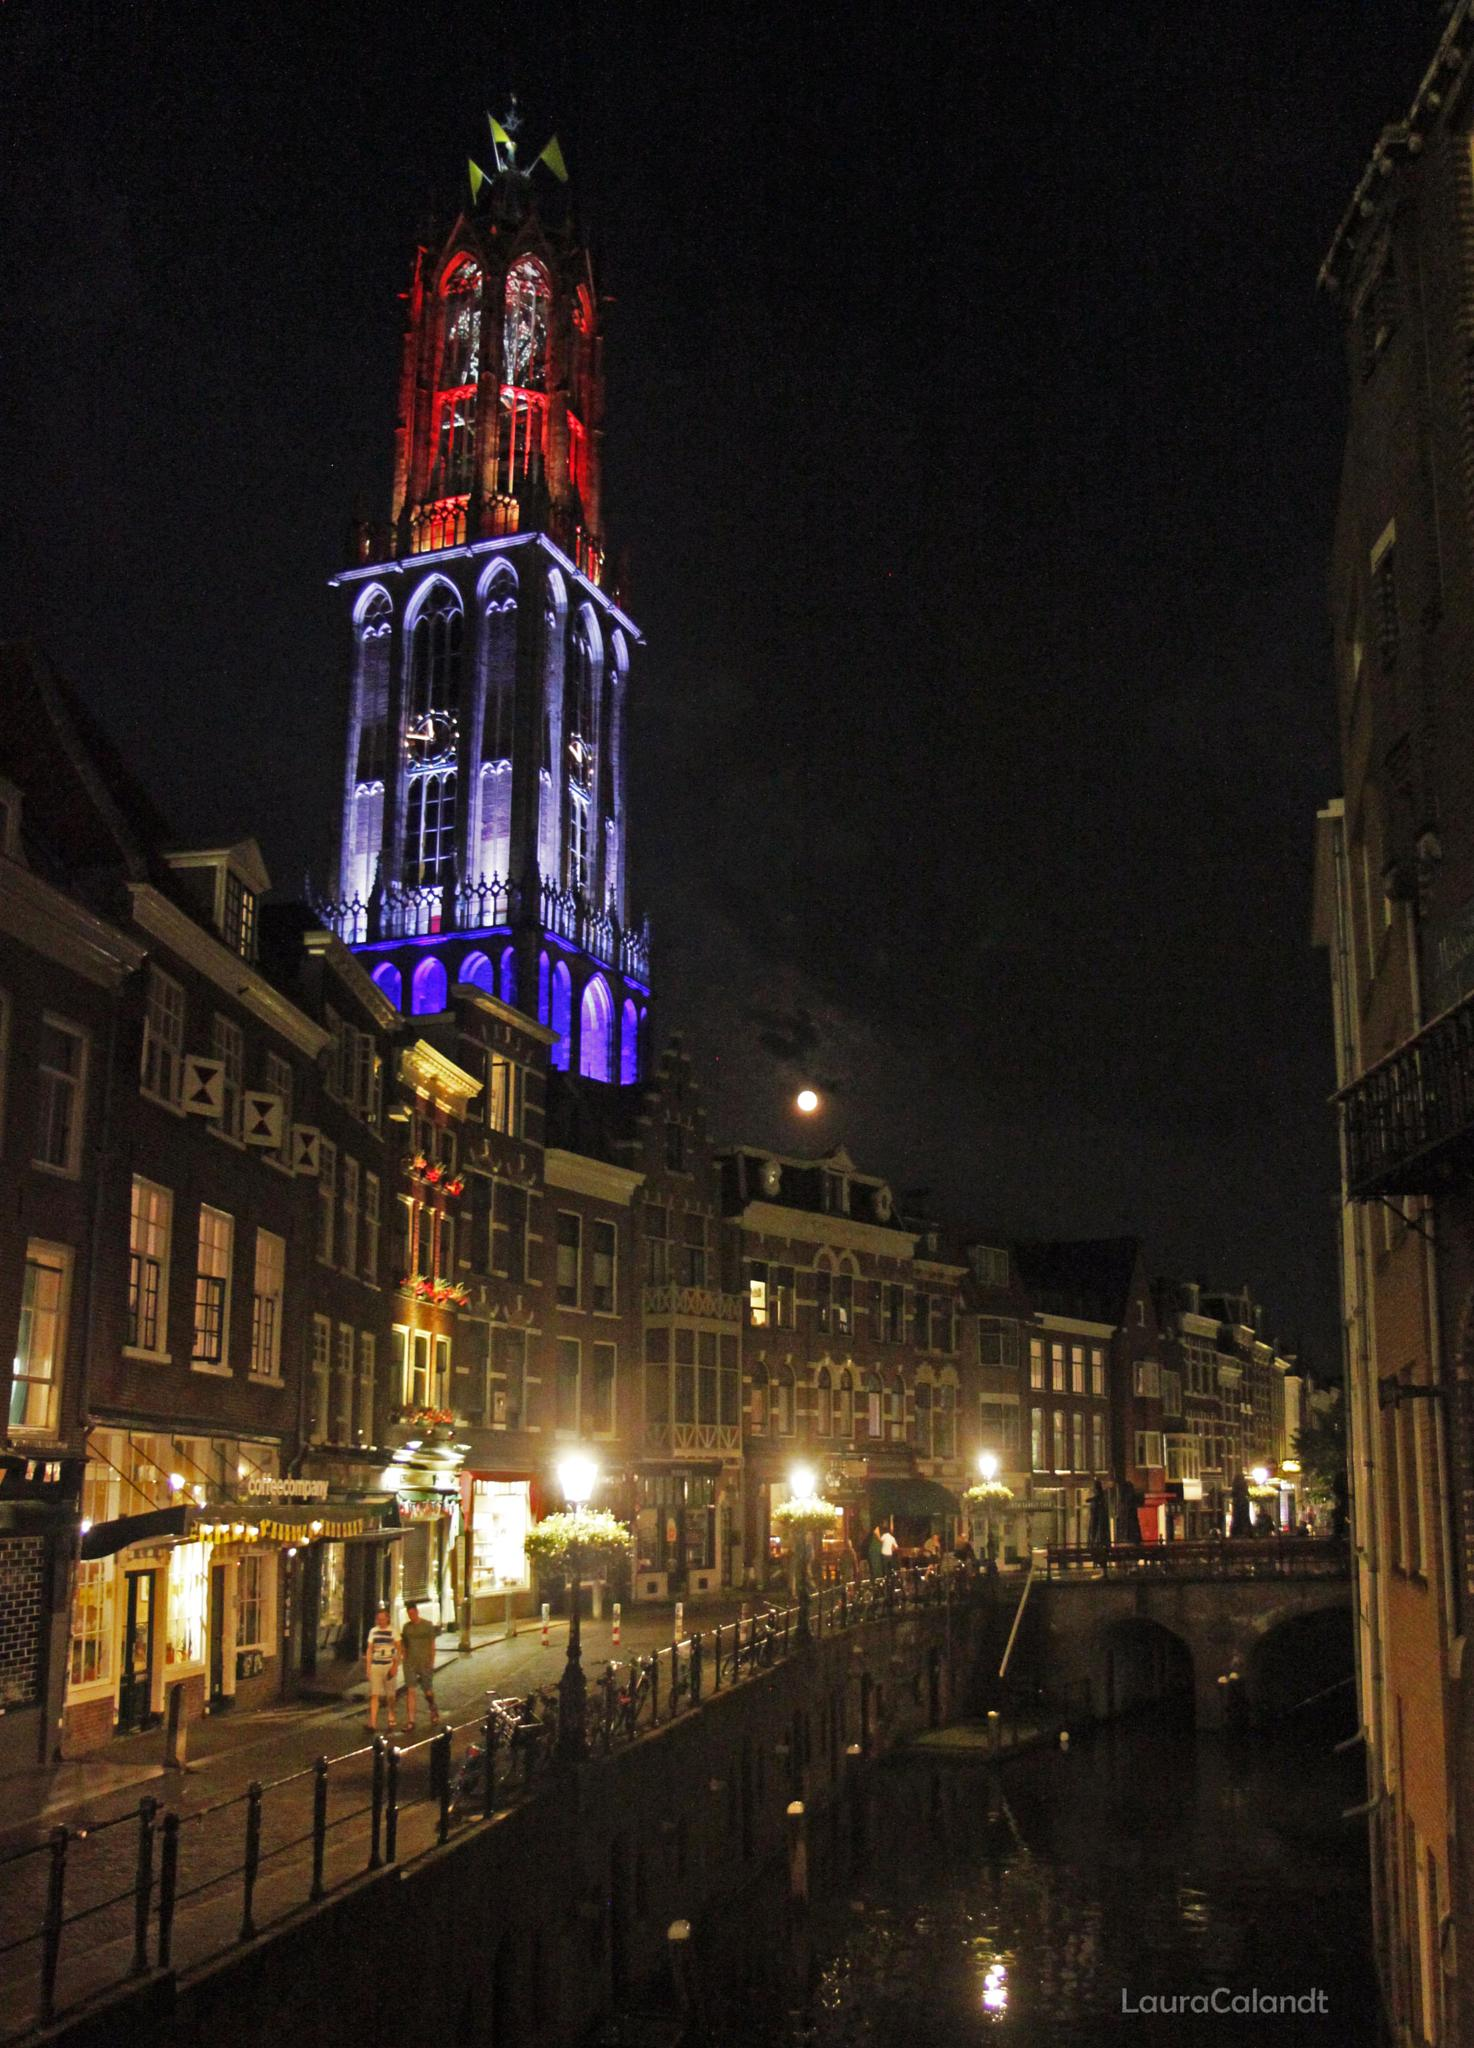 Dom tower le tour the france by Laura Calandt